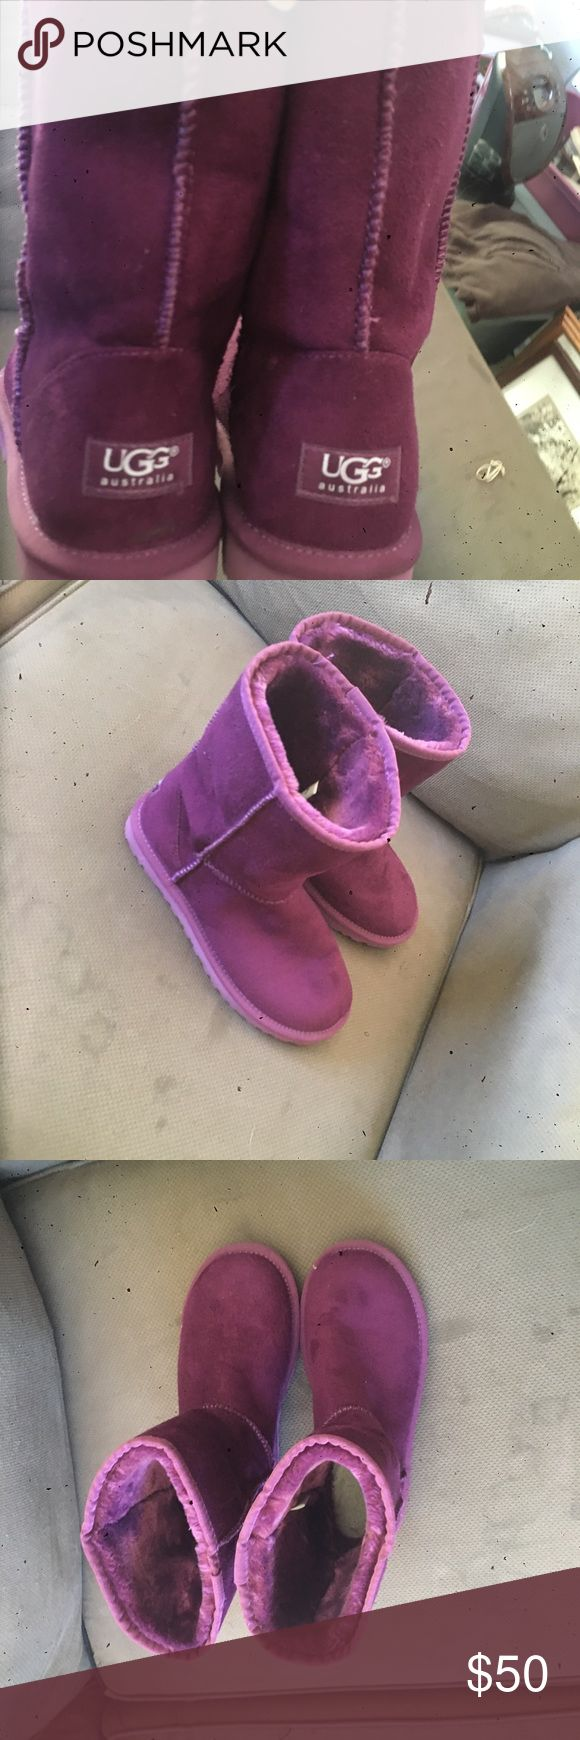 Purple uggs Size 7 adults. Got them as a gift last Christmas but they were too small. Worn once by my cousin inside the house as slippers because her feet were cold. Make an offer if you like them! UGG Shoes